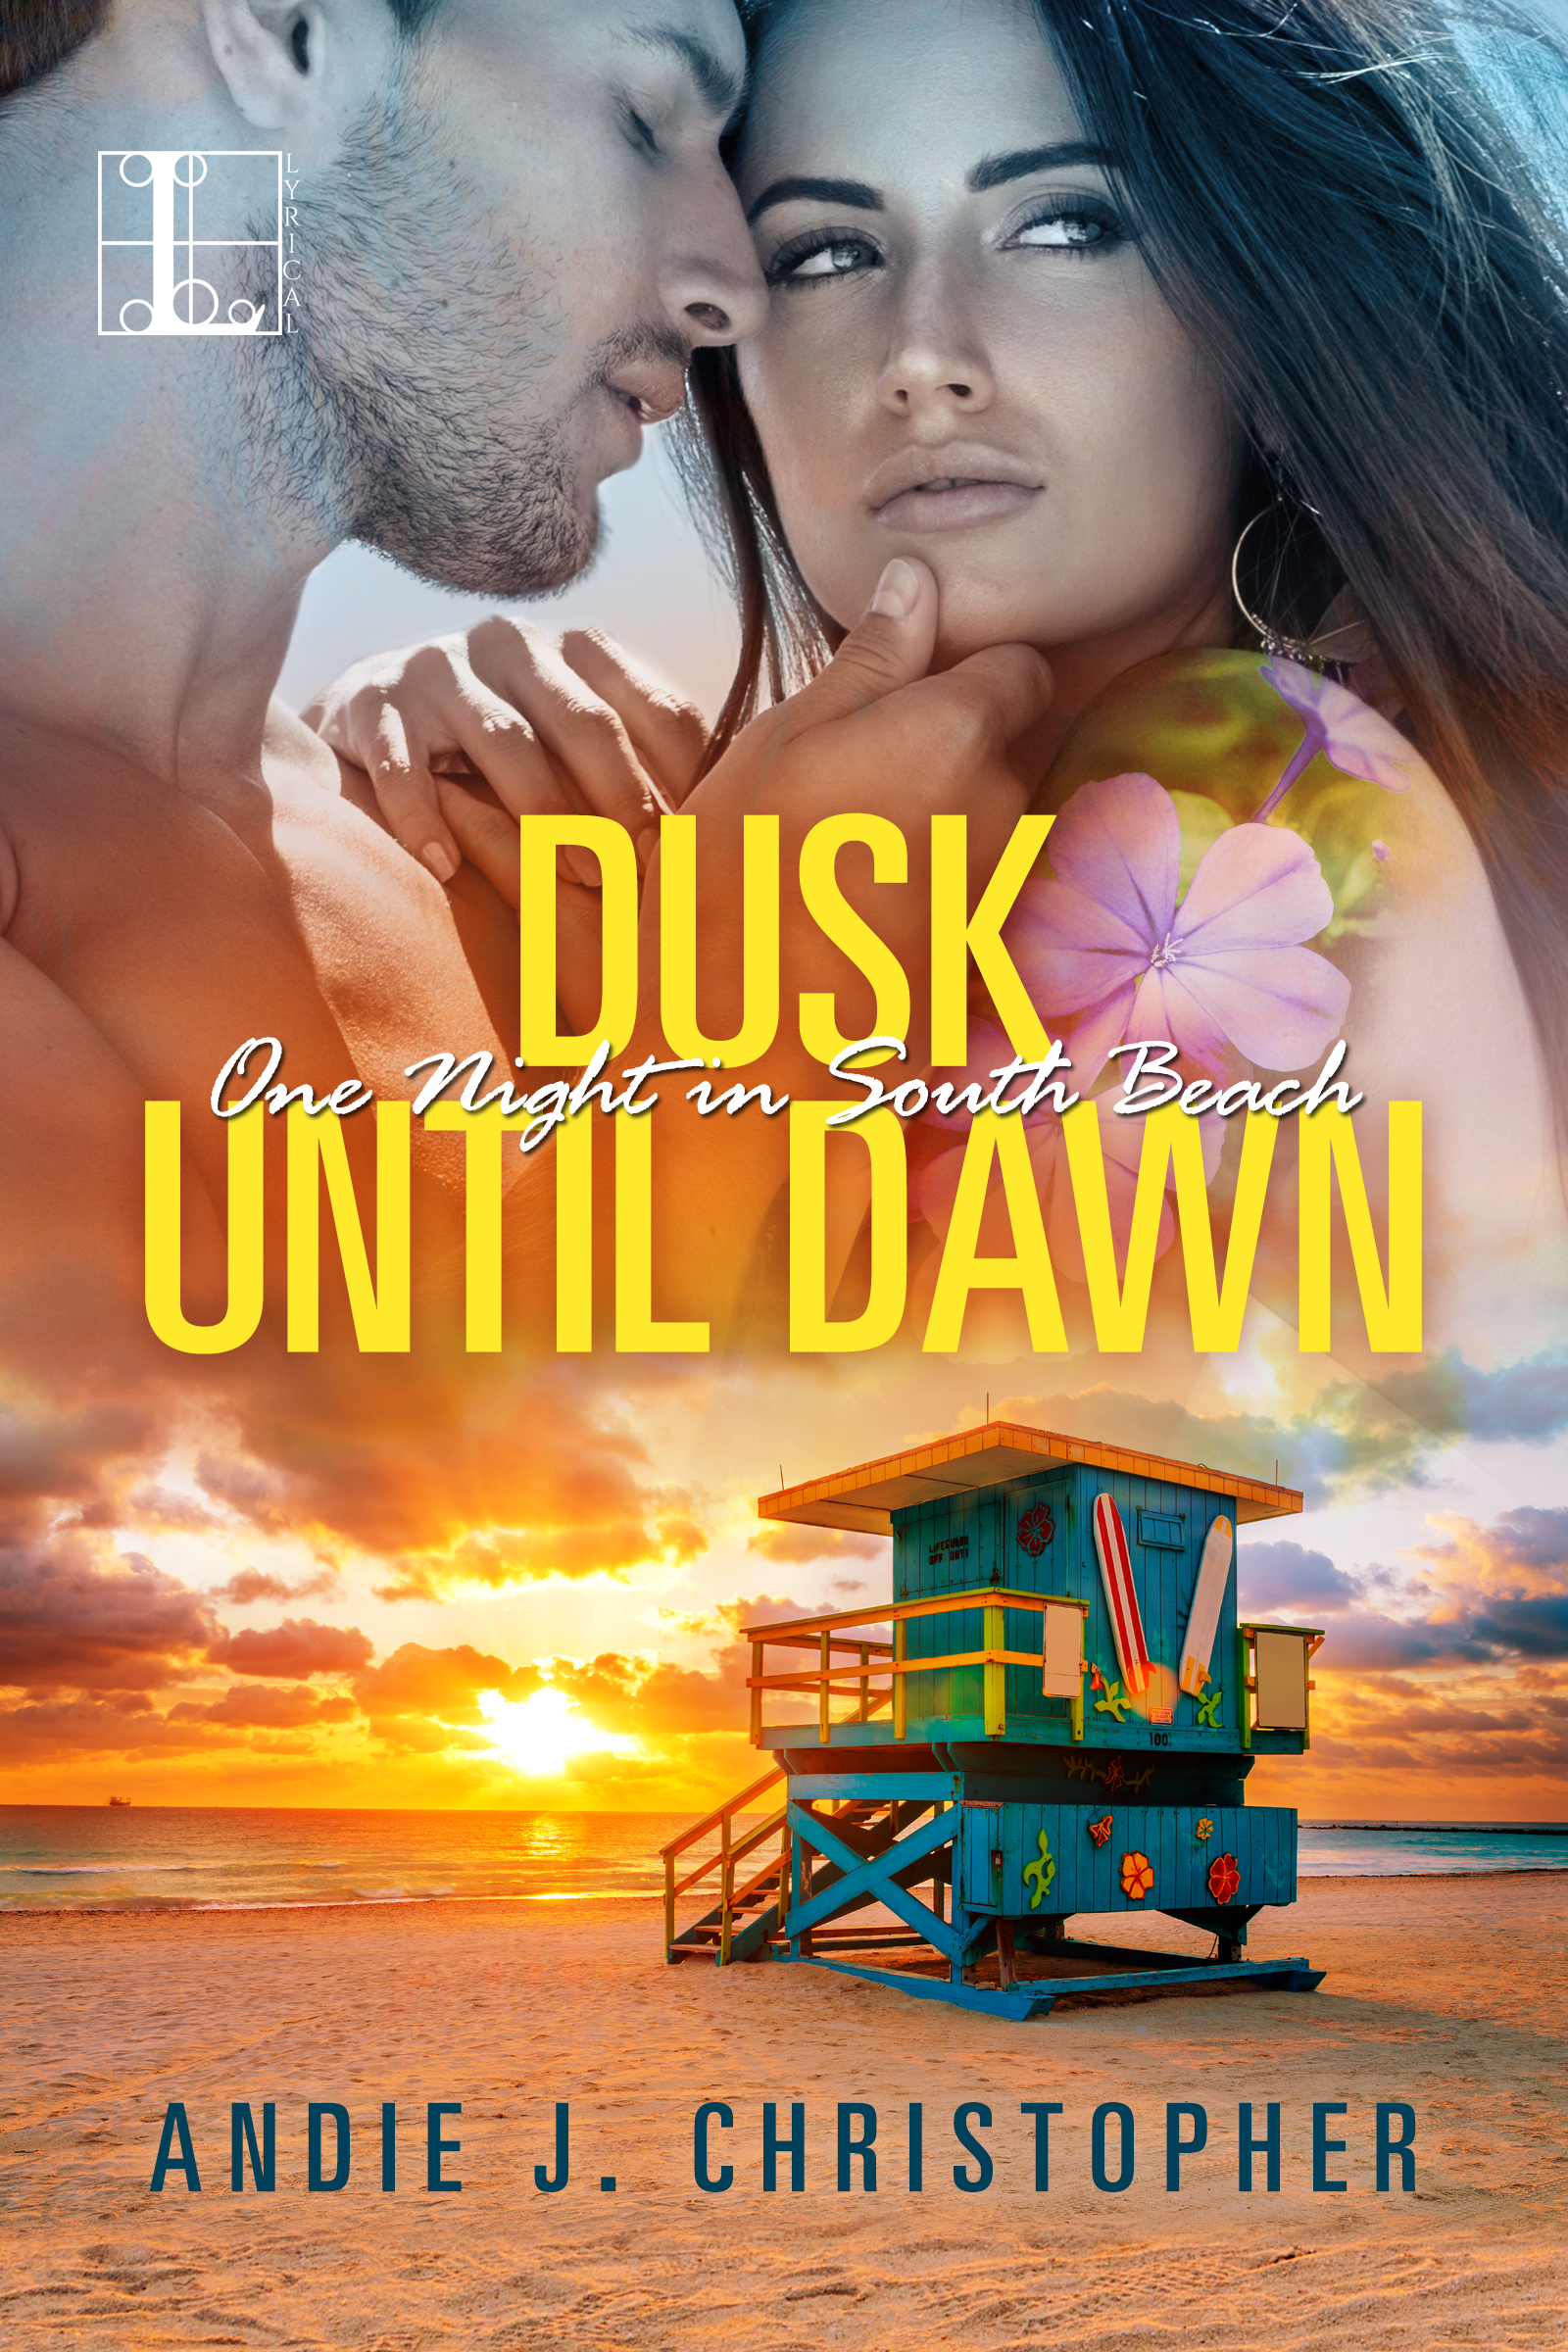 One Night in South Beach 2: Dusk Until Dawn, by And J. Christopher